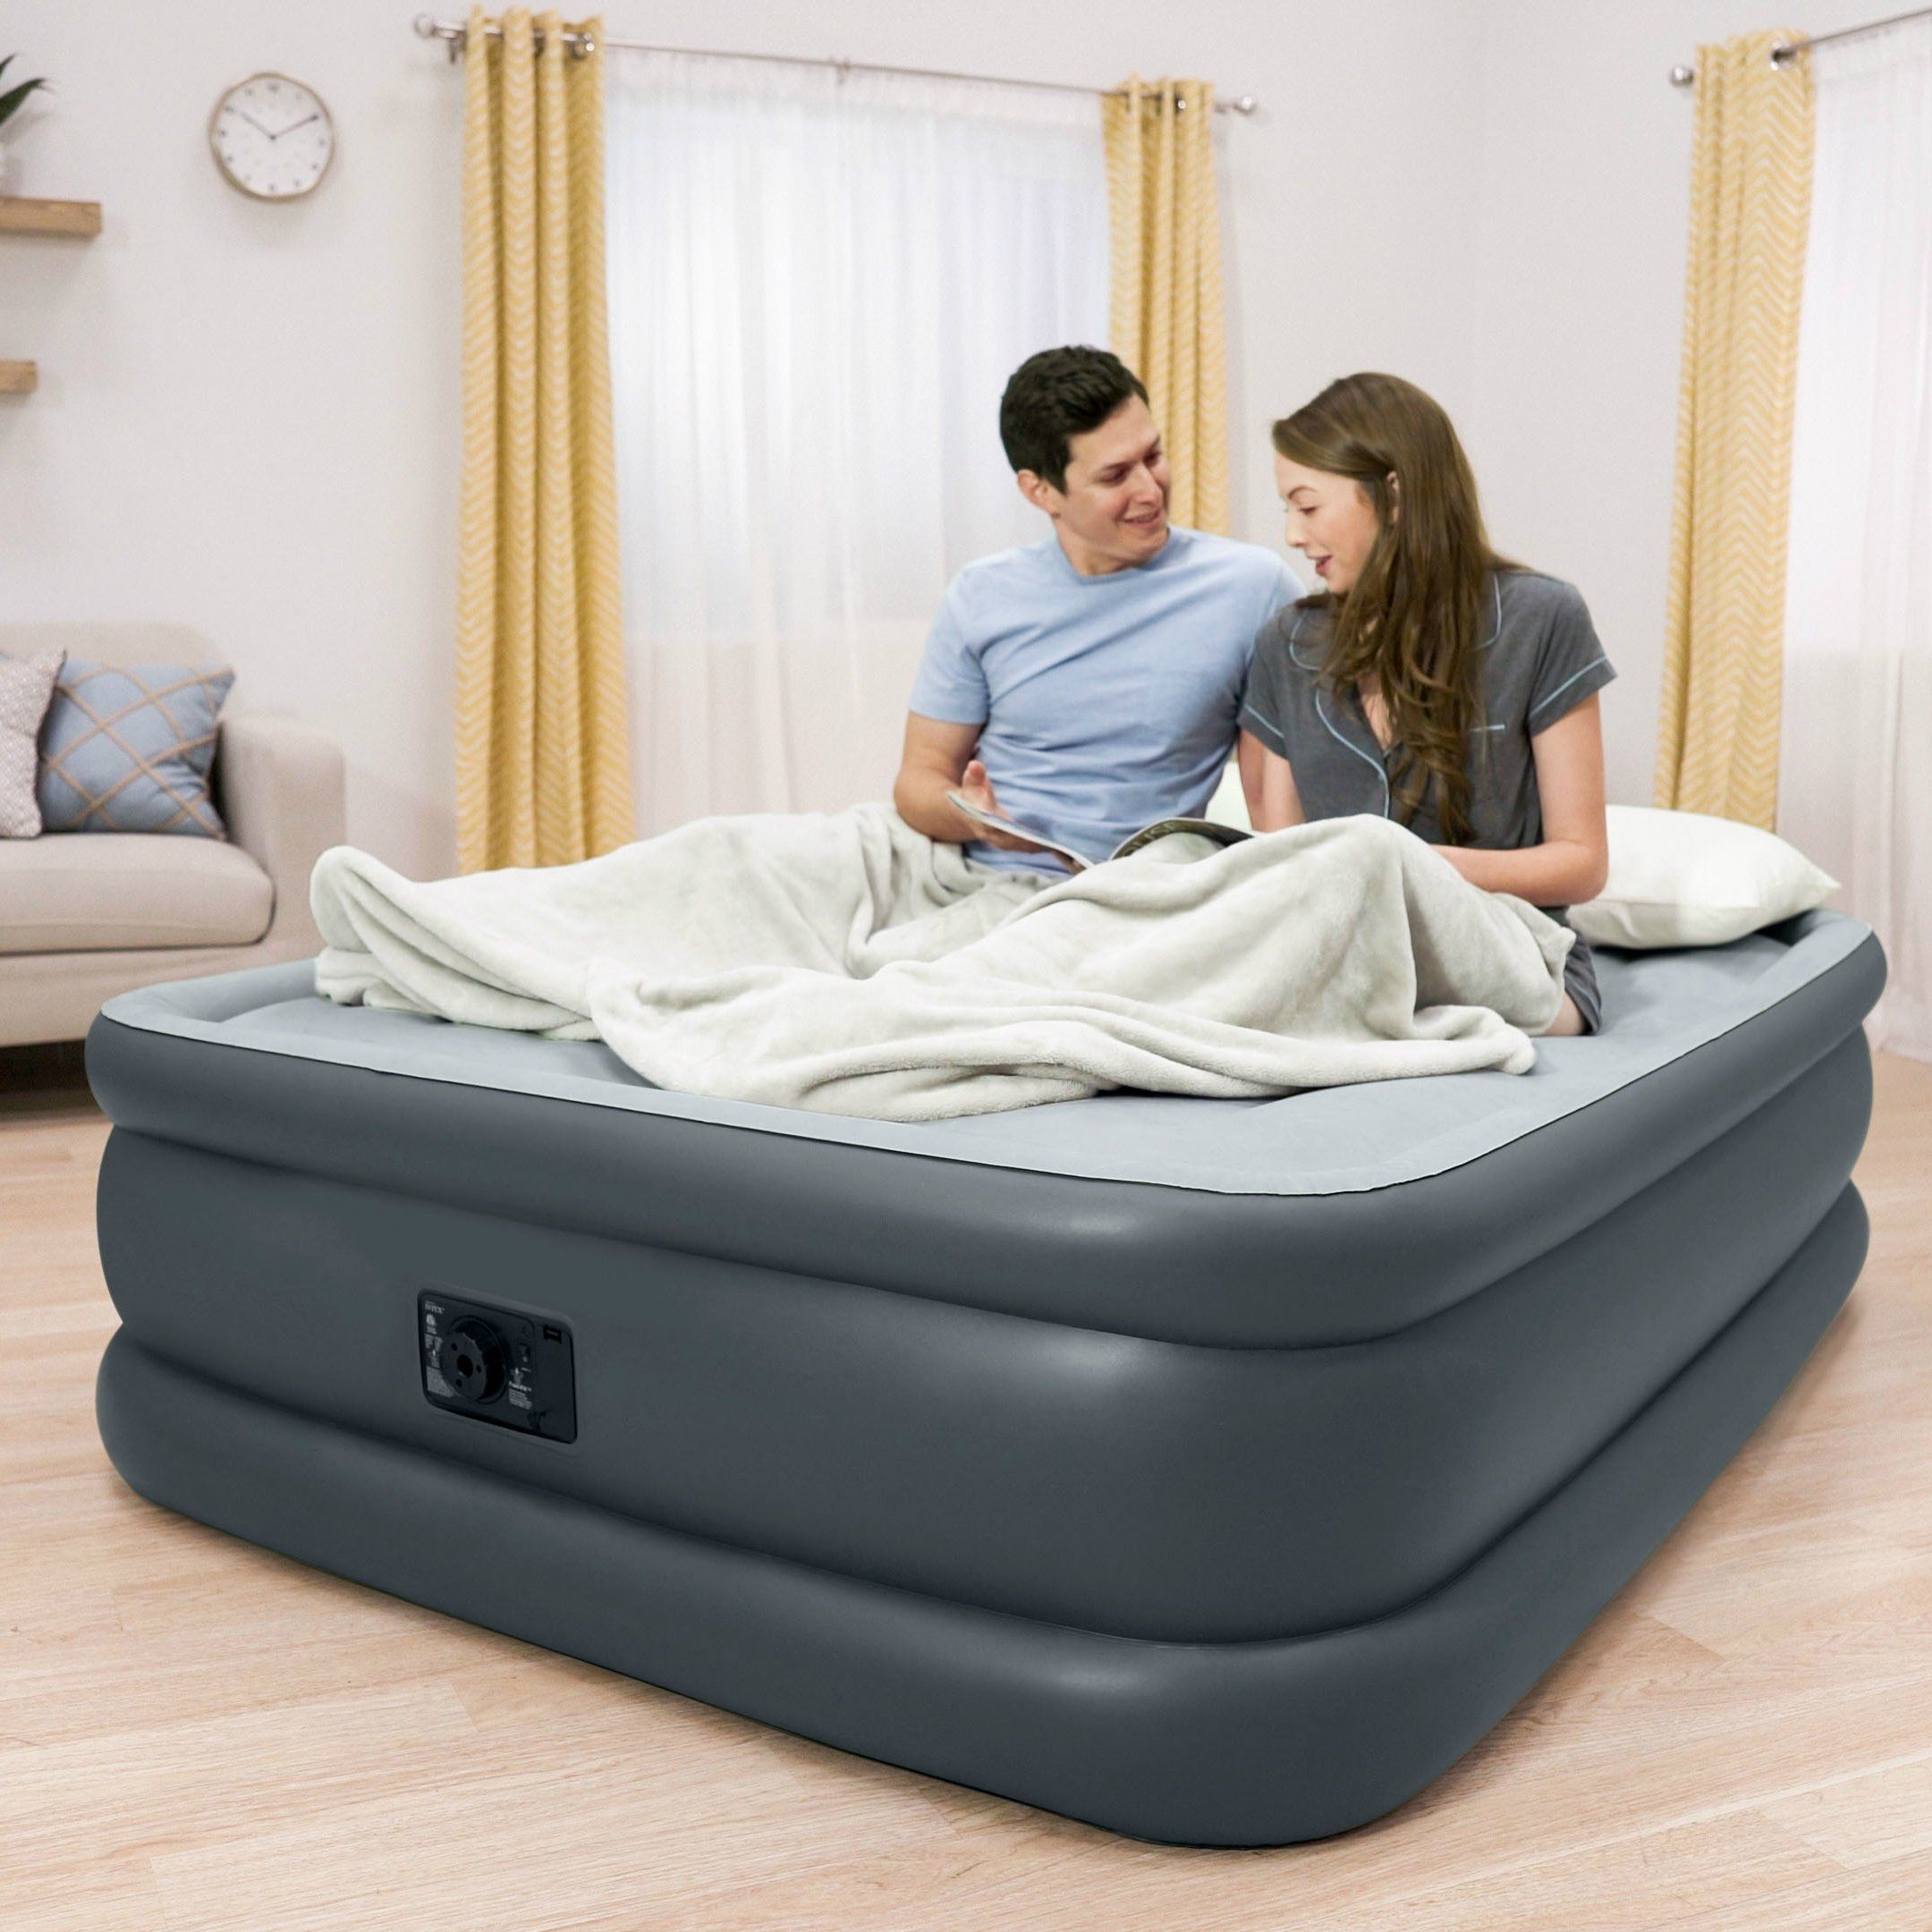 Intex Durabeam Standard Series Essential Rest Airbed With Builtin Electric Pump Bed Height 20 Queen Be Sure To Inflatable Air Mattress Air Bed Air Mattress